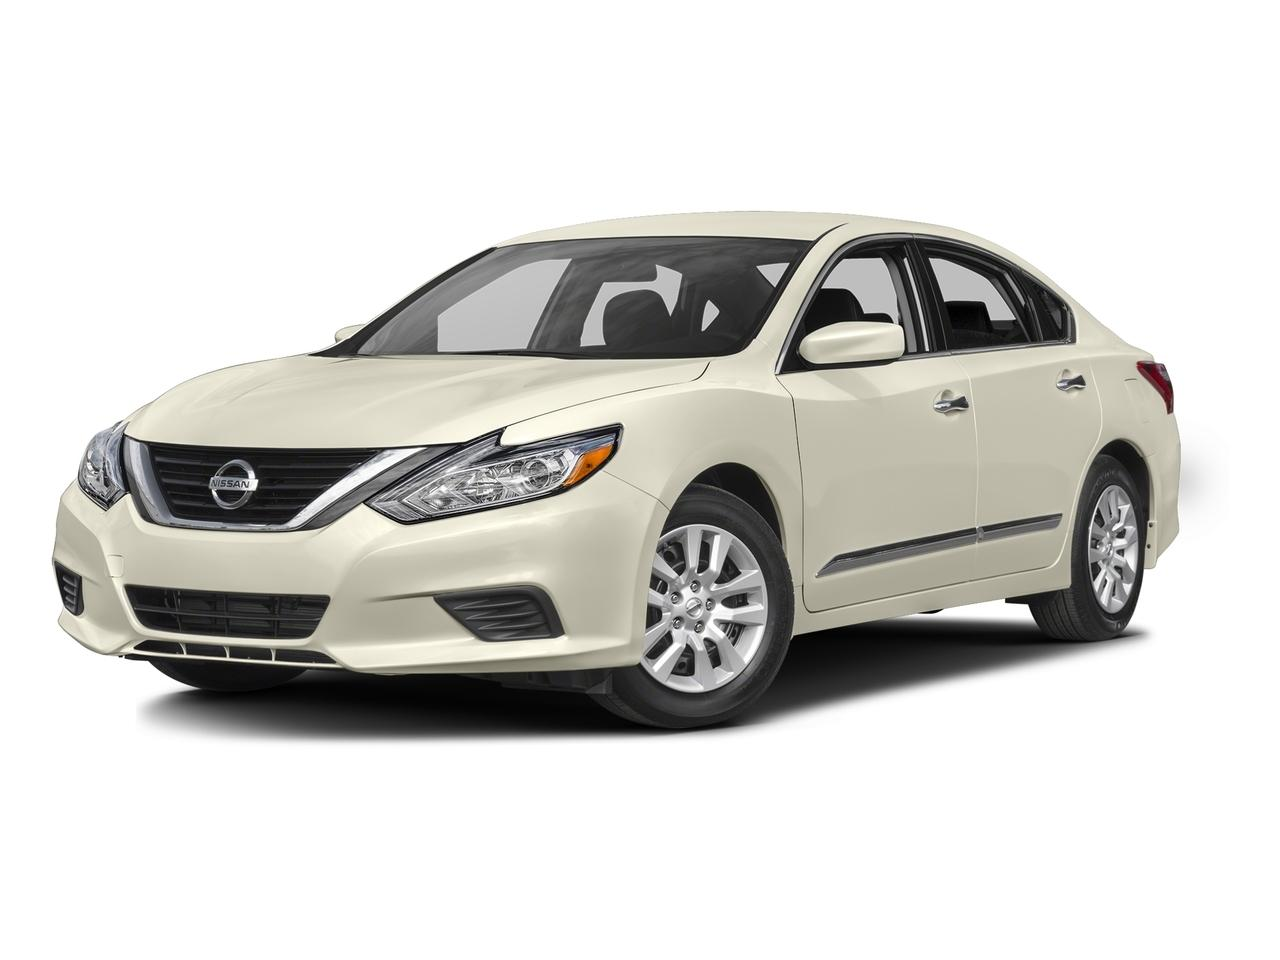 2016 Nissan Altima Vehicle Photo in Quakertown, PA 18951